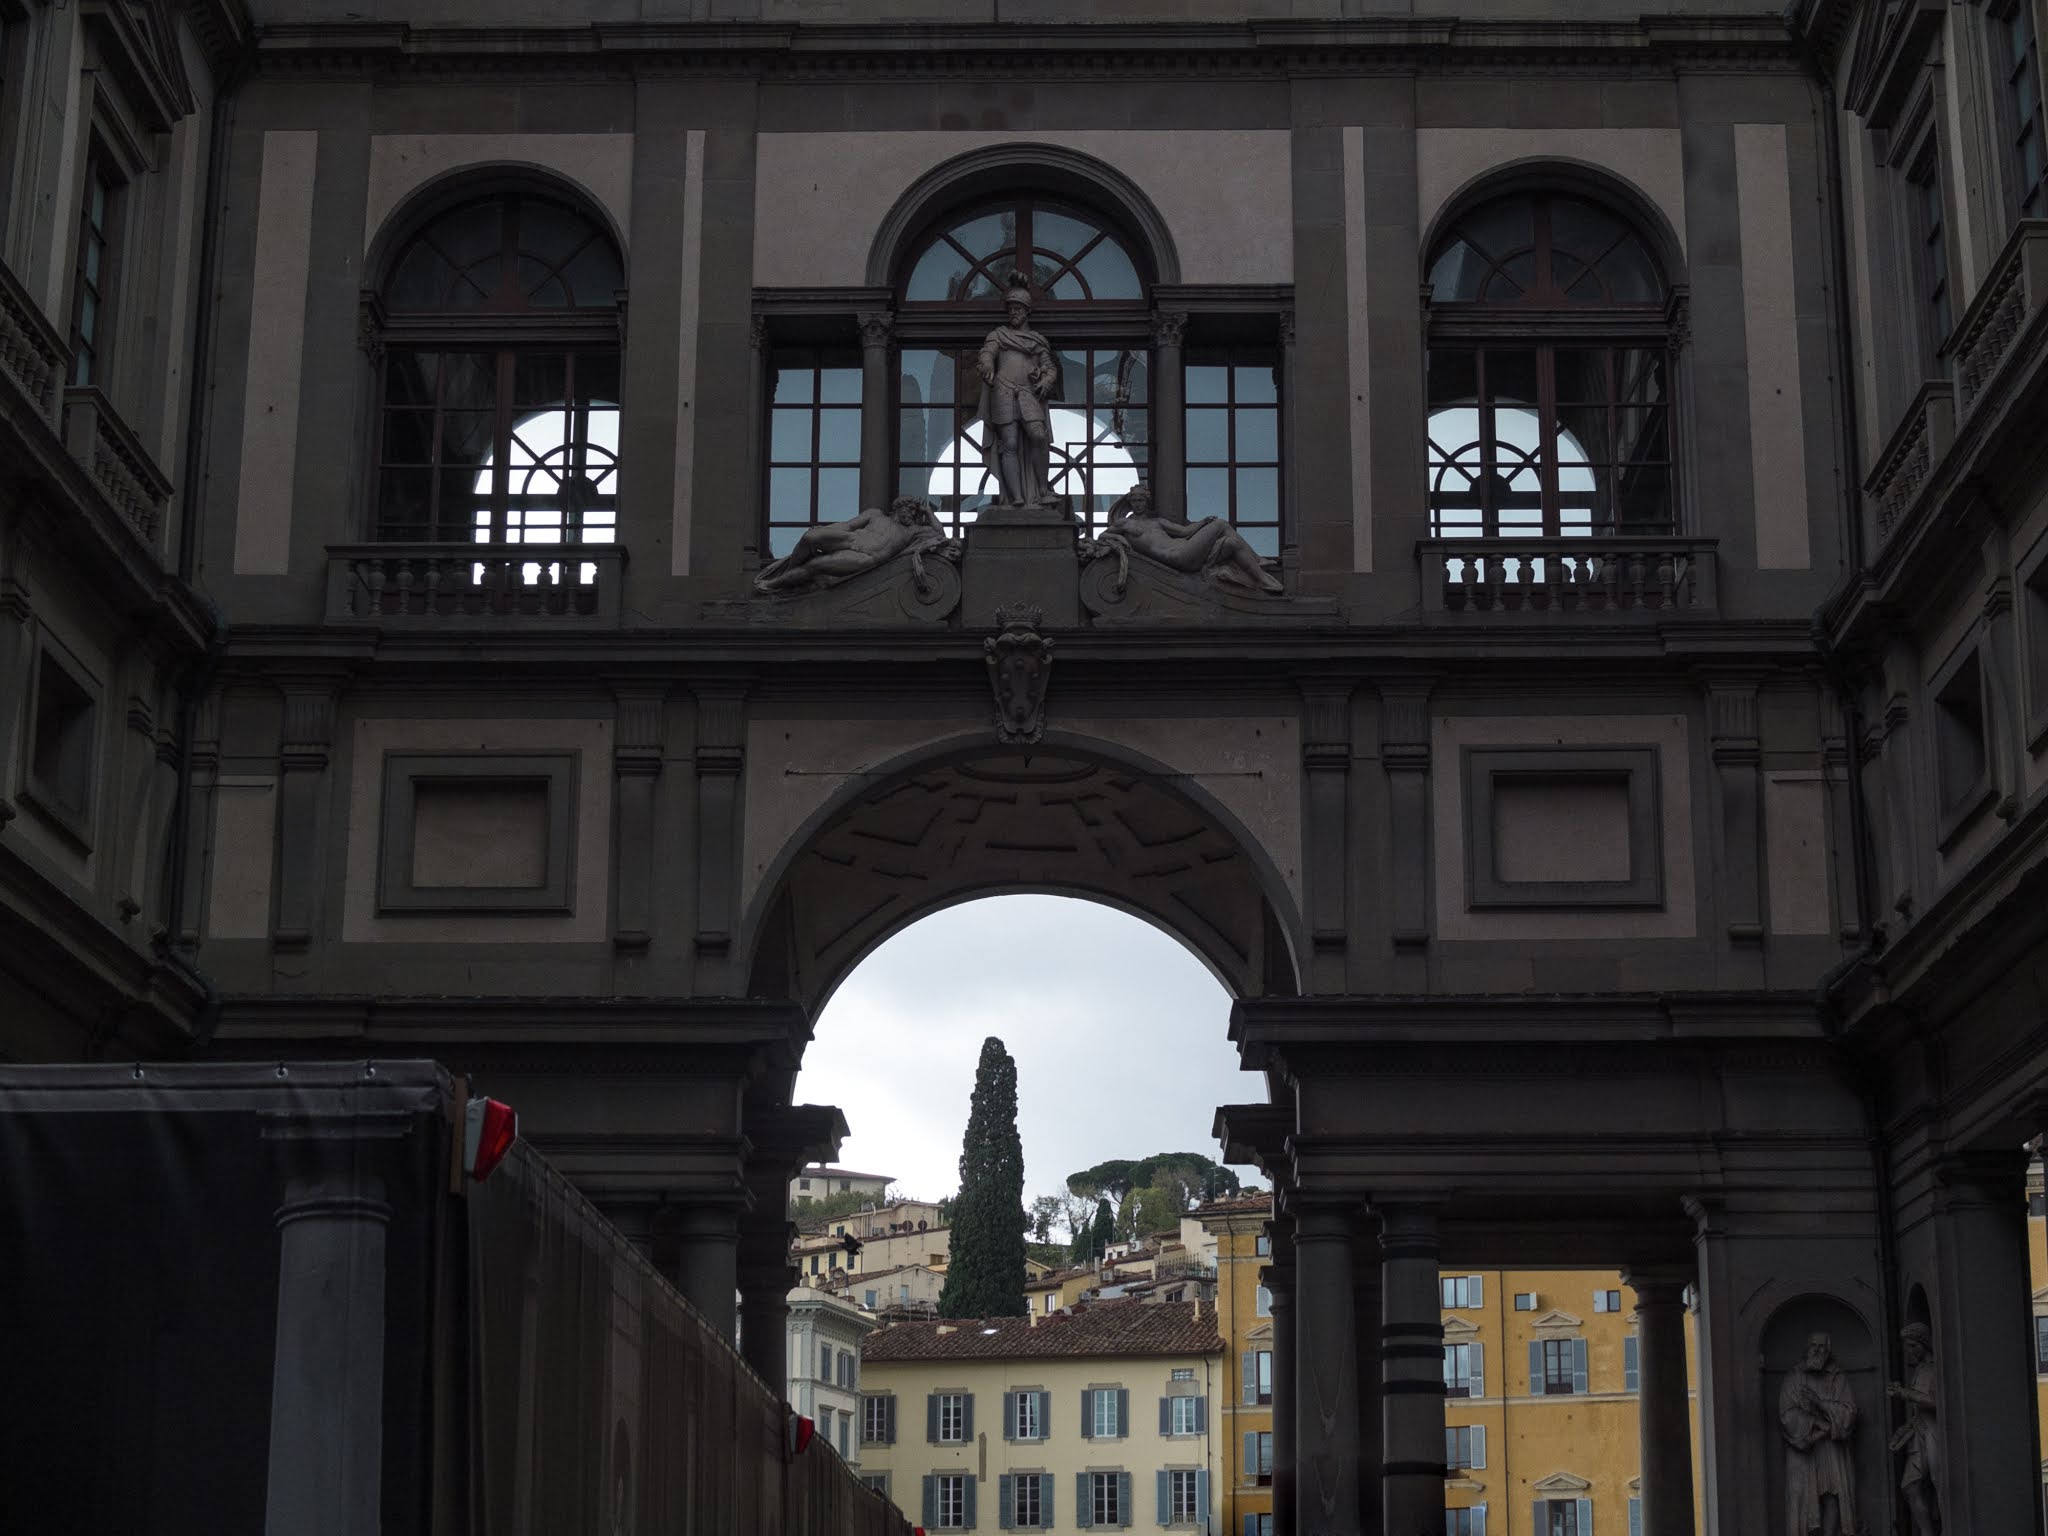 Views from the inside of the Uffizi Gallery in Florence.